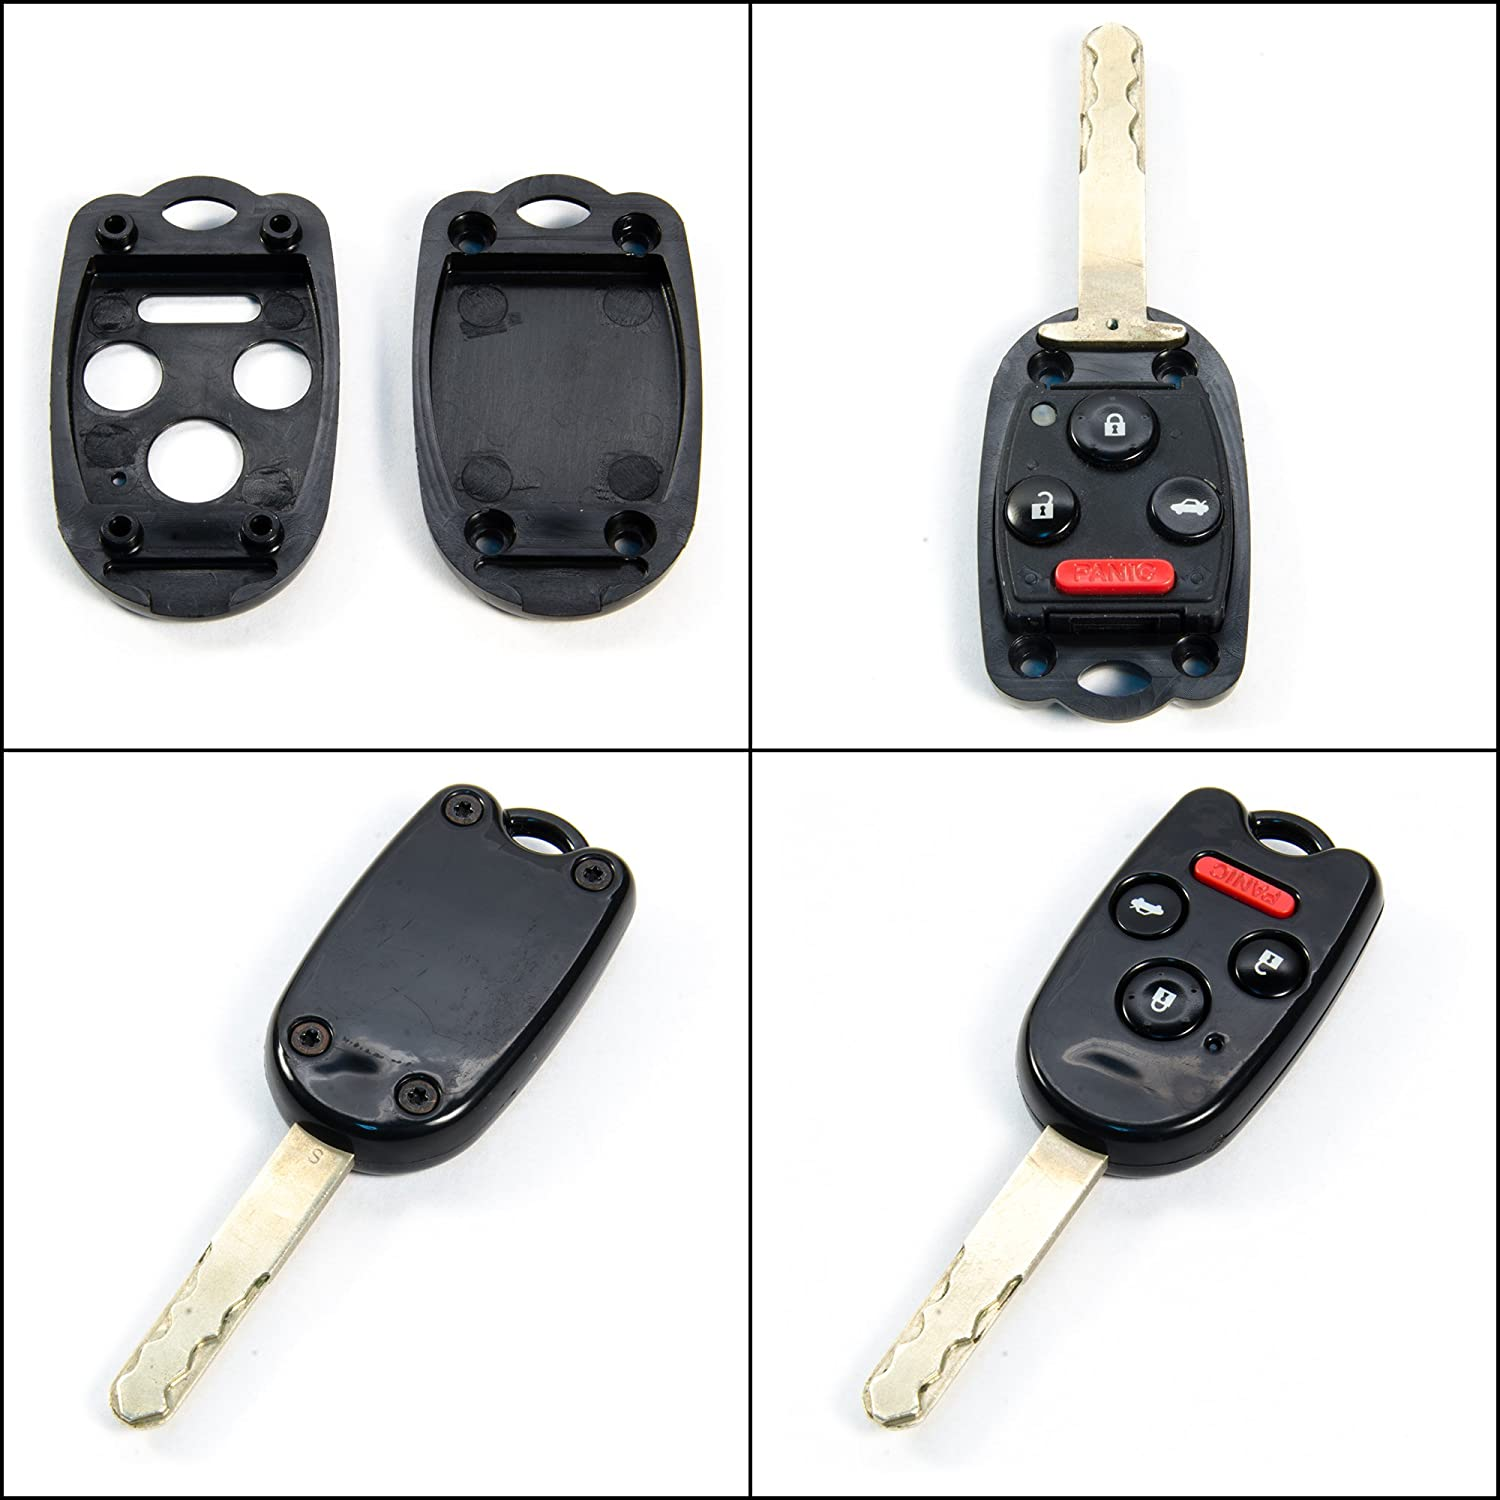 amazon com stauber best honda key shell replacement for accord